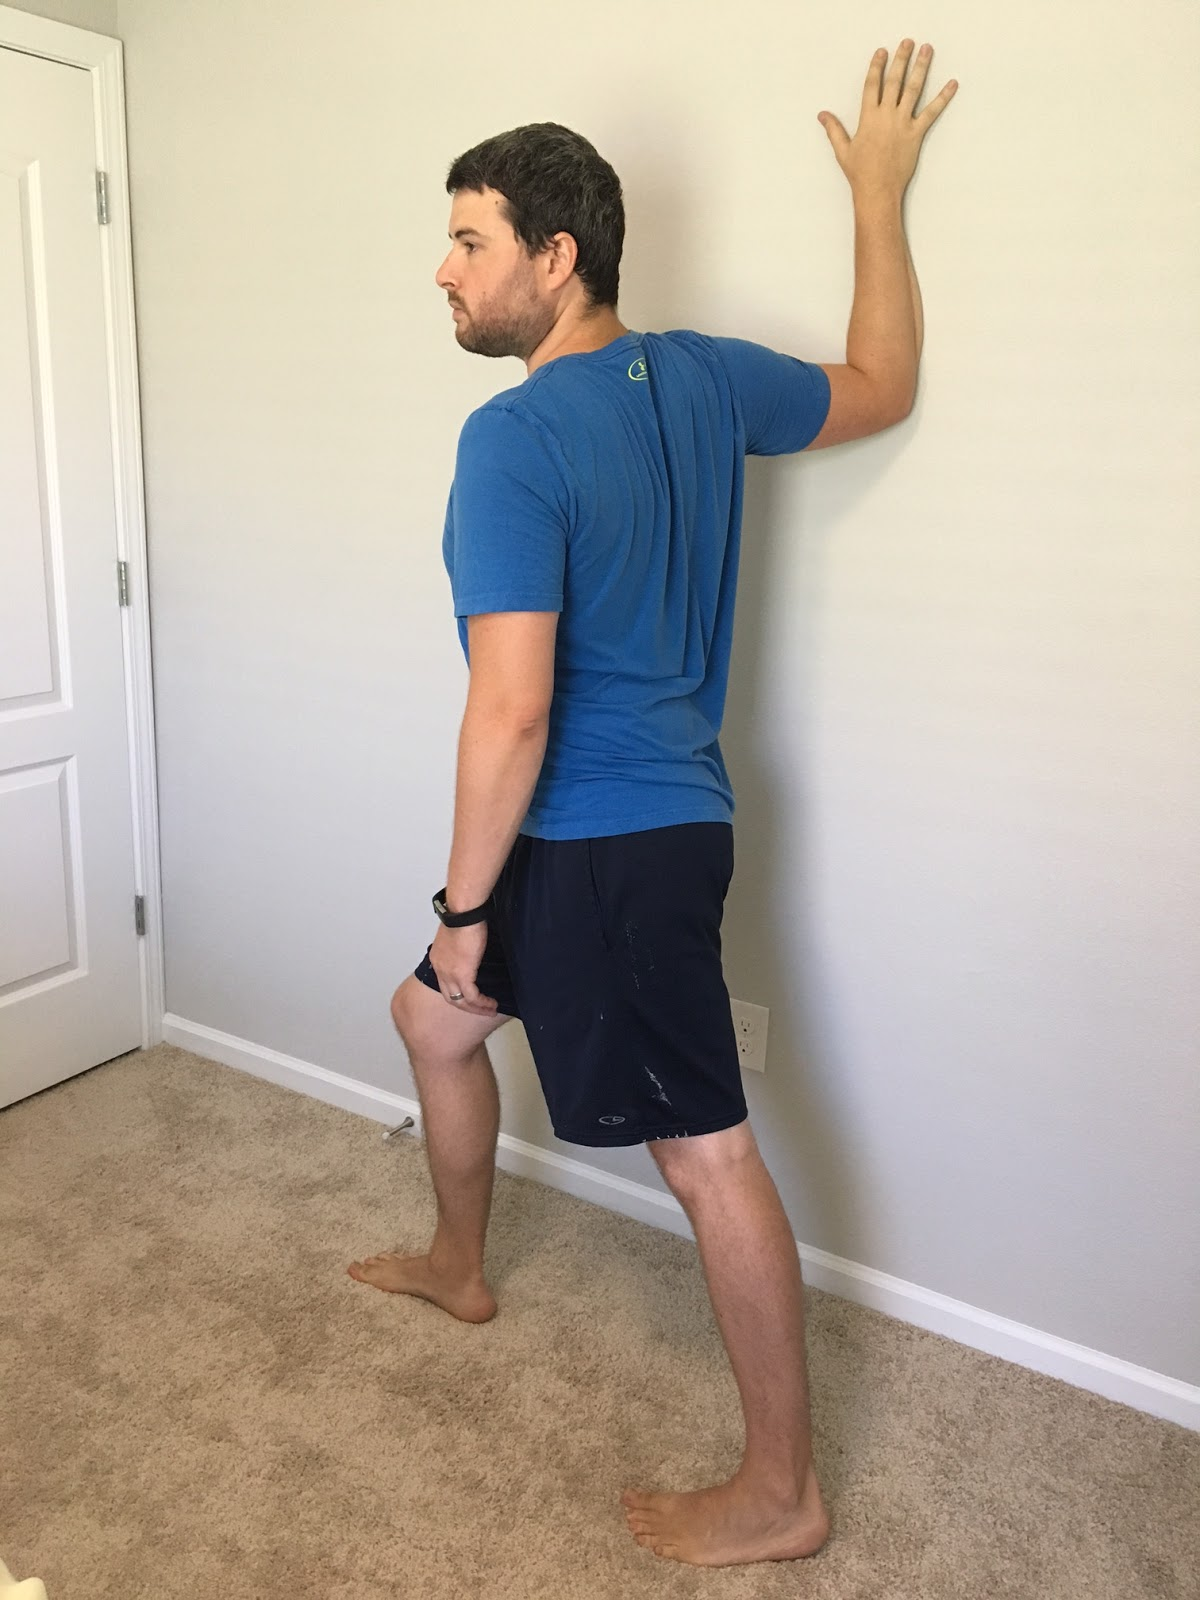 Anterior Shoulder & Chest Stretch - G4 Physiotherapy & Fitness  |Pectoralis Major Stretch